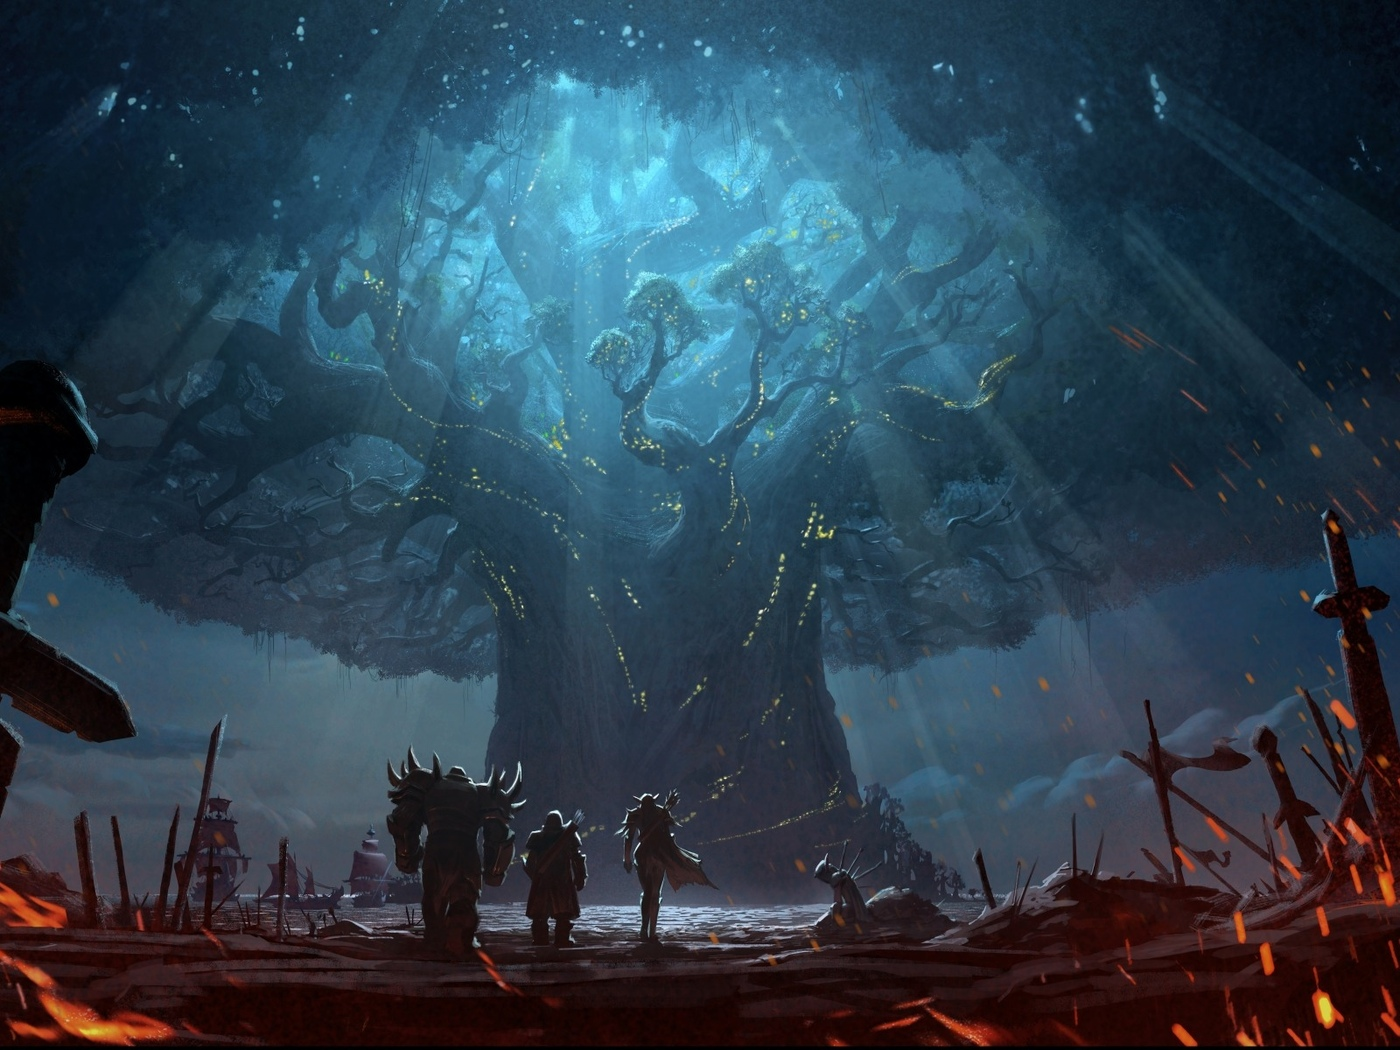 battlefield, game, horde, battle, arcraft, sword, trees, weapon, fantasy, artwork, elf, sailing ship, digital art, fantasy art, orld of arcraft, orld of arcraft attle for zeroth, lliance, eldrassil, fire, landscape